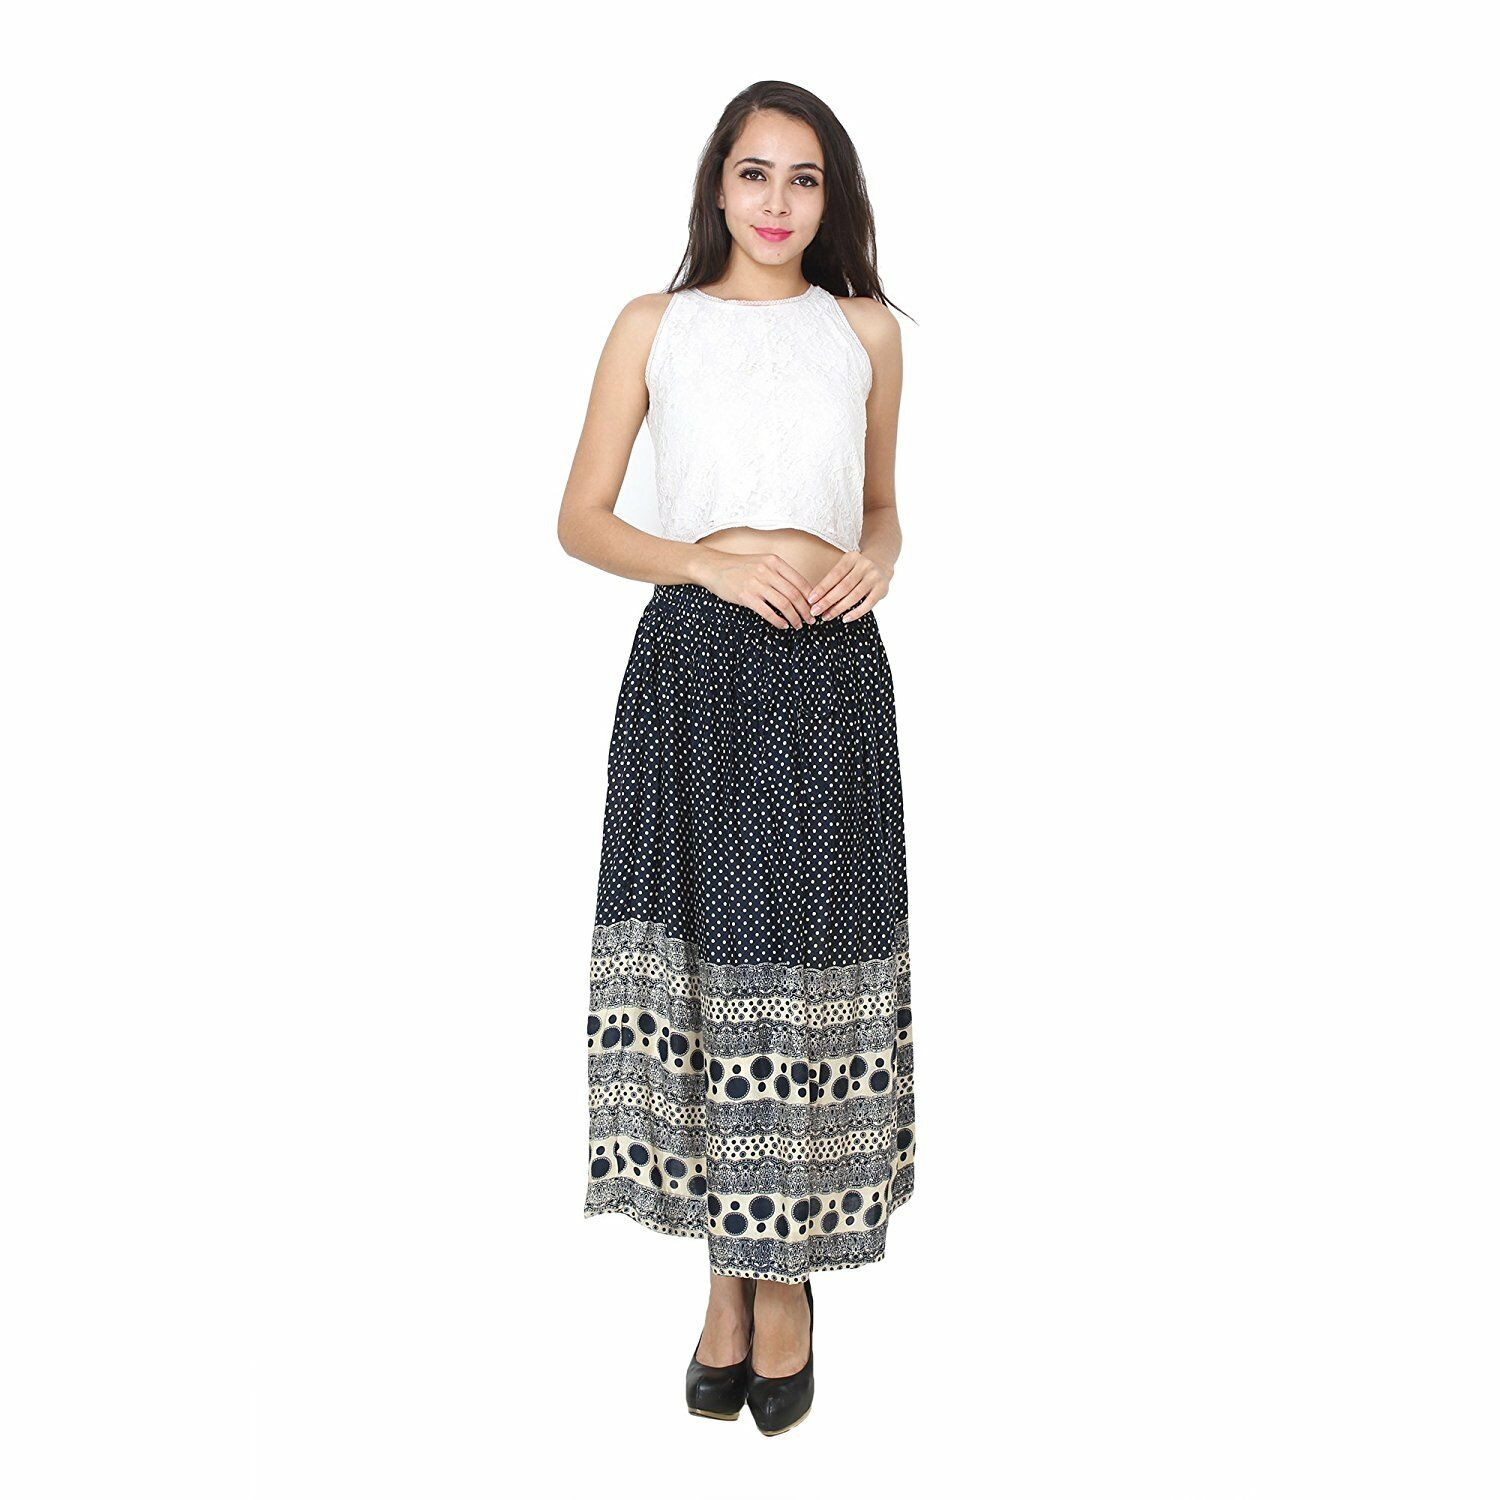 Girls bluee Printed Long Skirt For Casual Stylish Wear For Women's Daily Wear